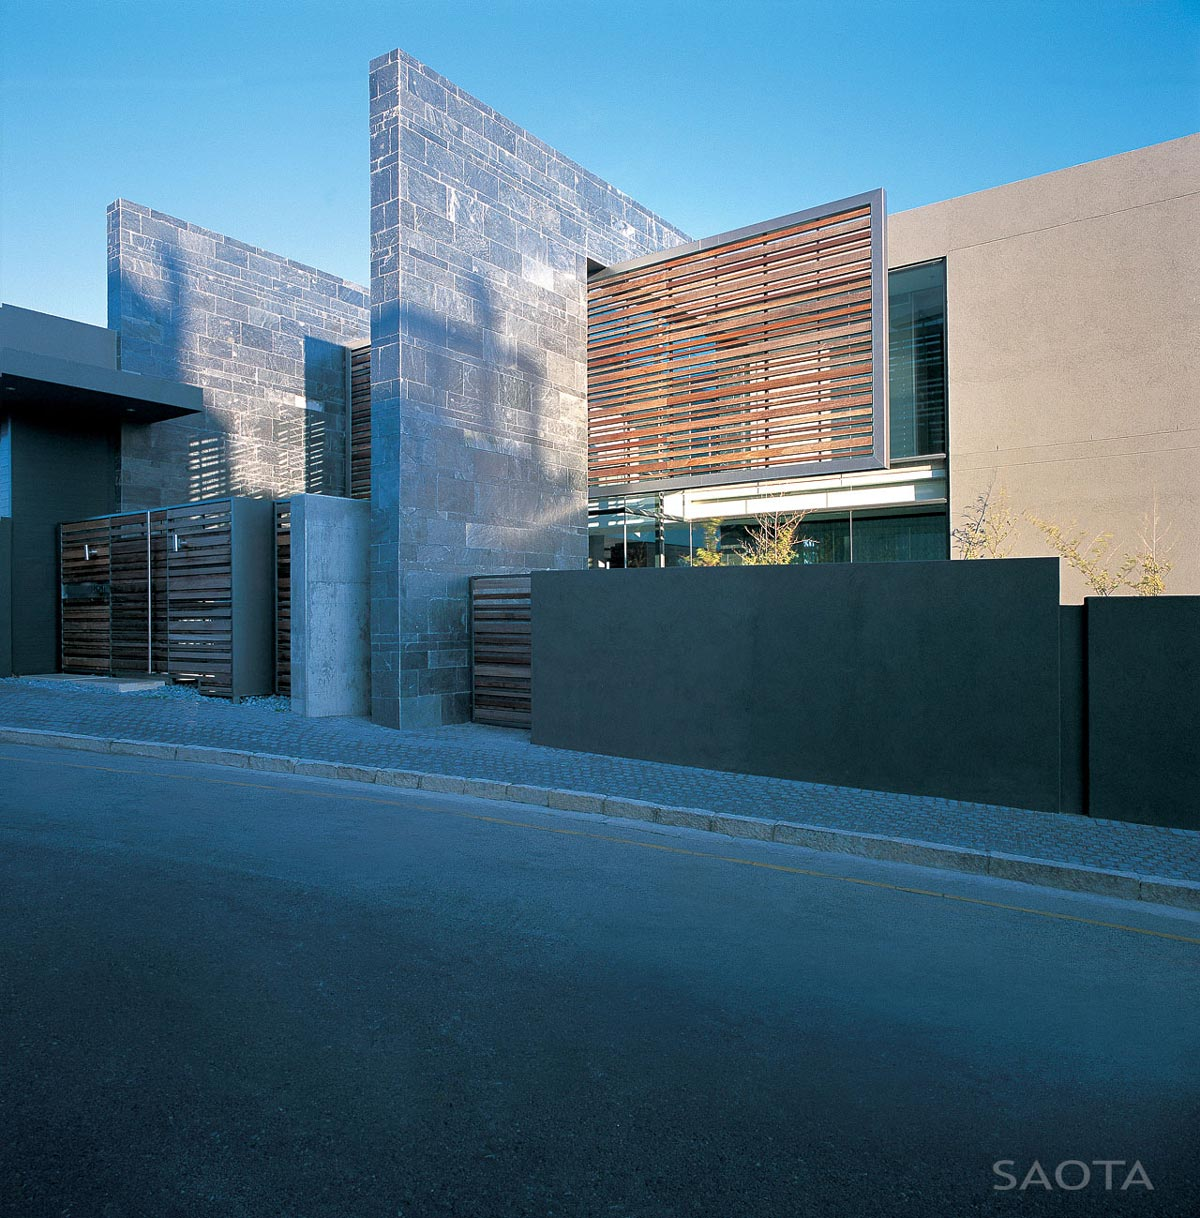 Entrance, St Leon 10 in Cape Town, South Africa by SAOTA and Antoni Associates